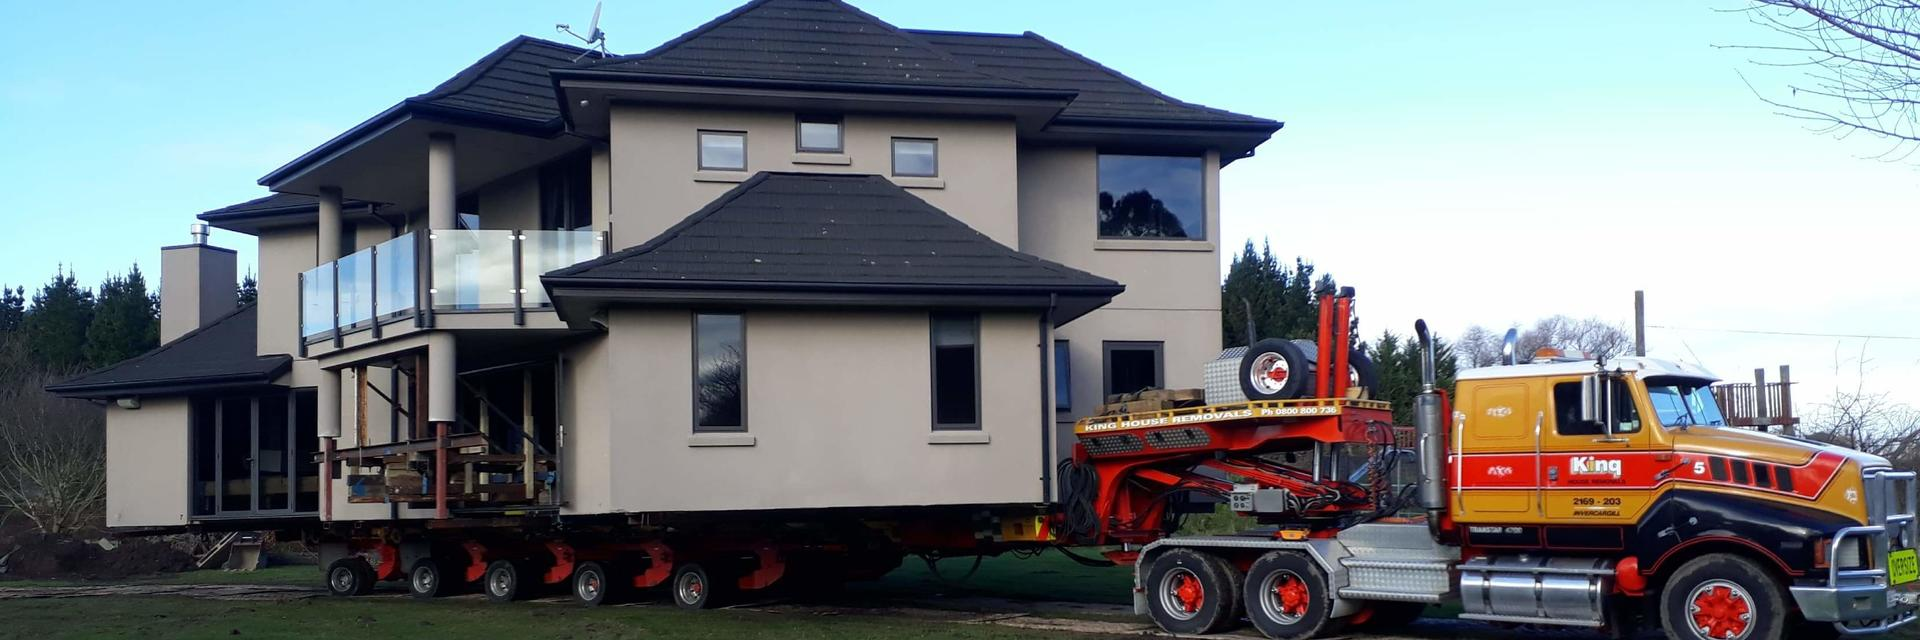 King House Removals | Specialists in relocating houses